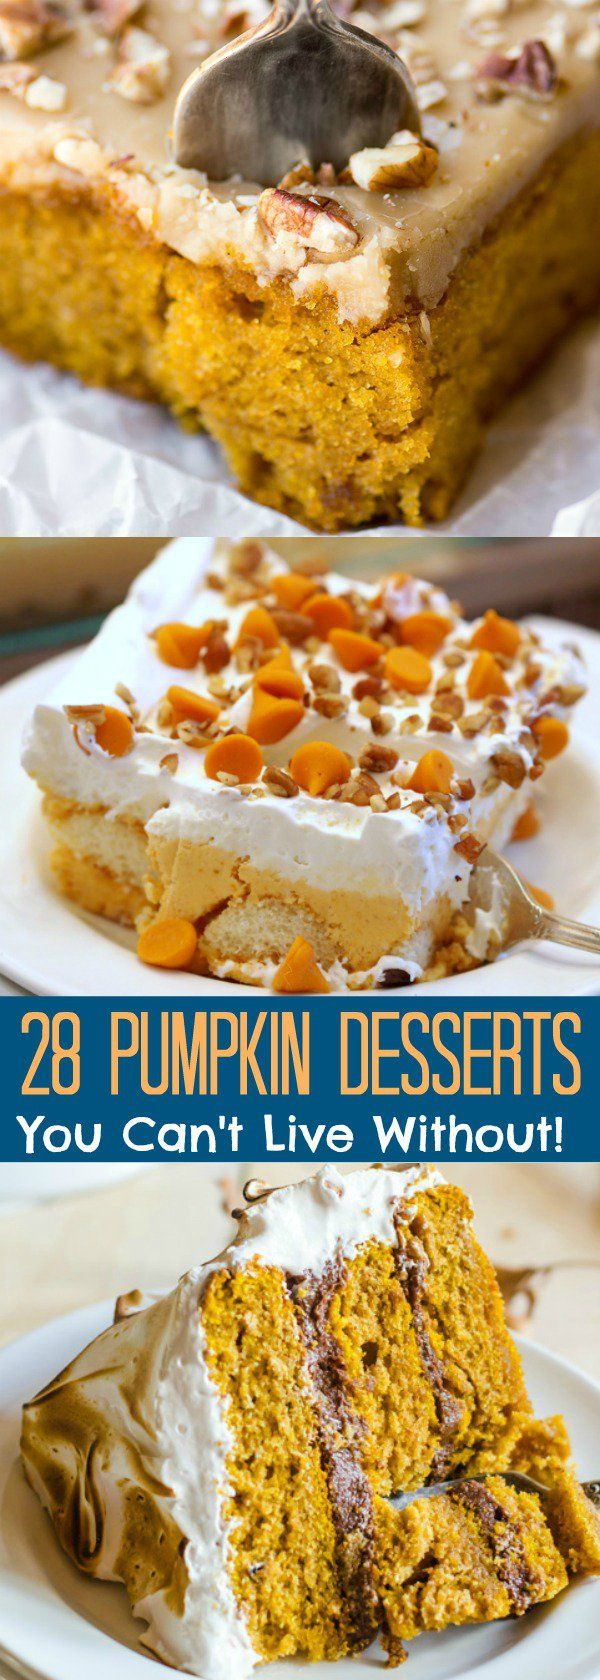 28 Pumpkin Desserts You Can't Live Without!